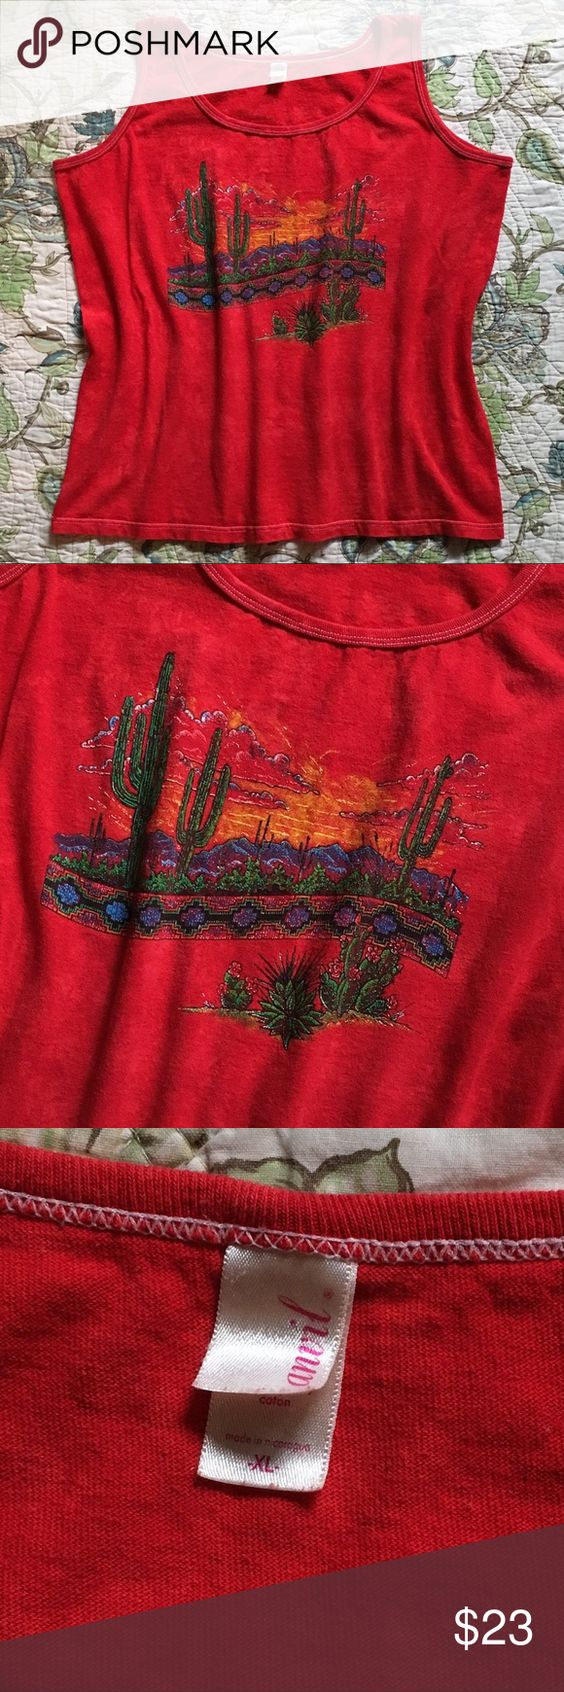 "Vintage 90s oversized graphic muscle tank Vintage 90s oversized graphic muscle tank. Bright red muscle tank that has a cactus landscape graphic design on the front. Measurements are taken laying flat: armpit to armpit: 23"" length: 25"" Vintage Tops Muscle Tees"